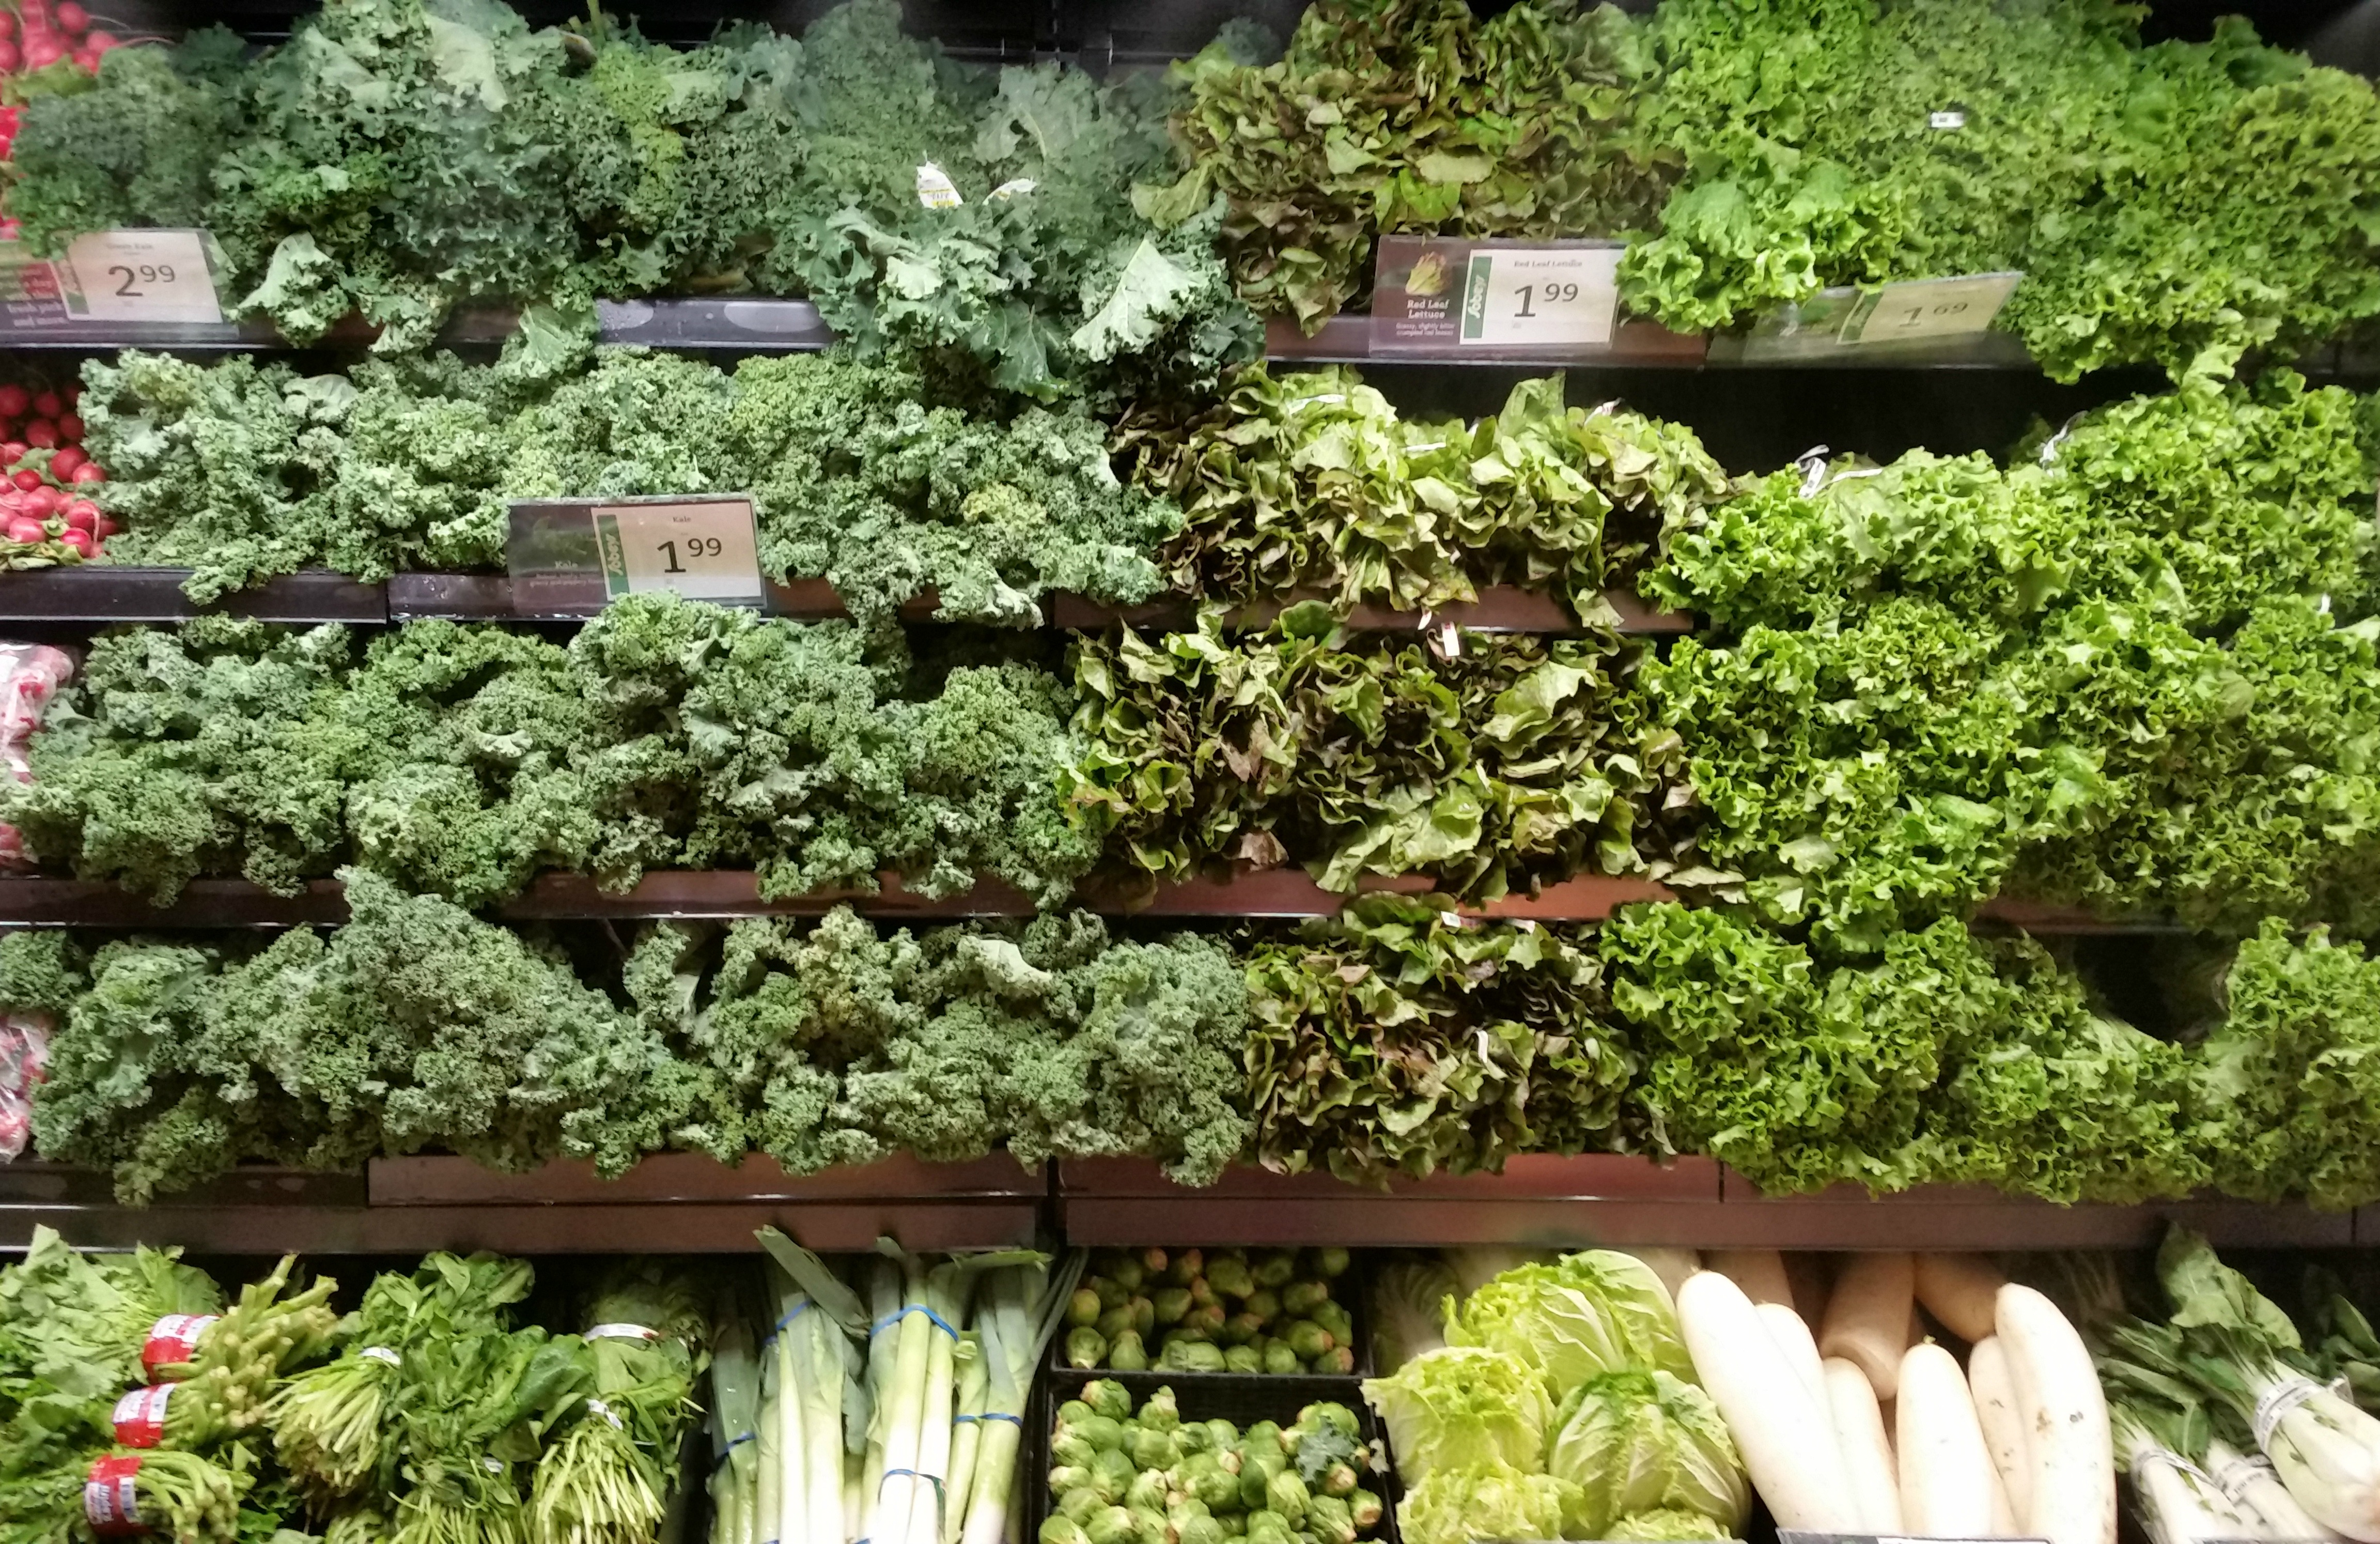 Sobeys Nolan Hill living wall of greens